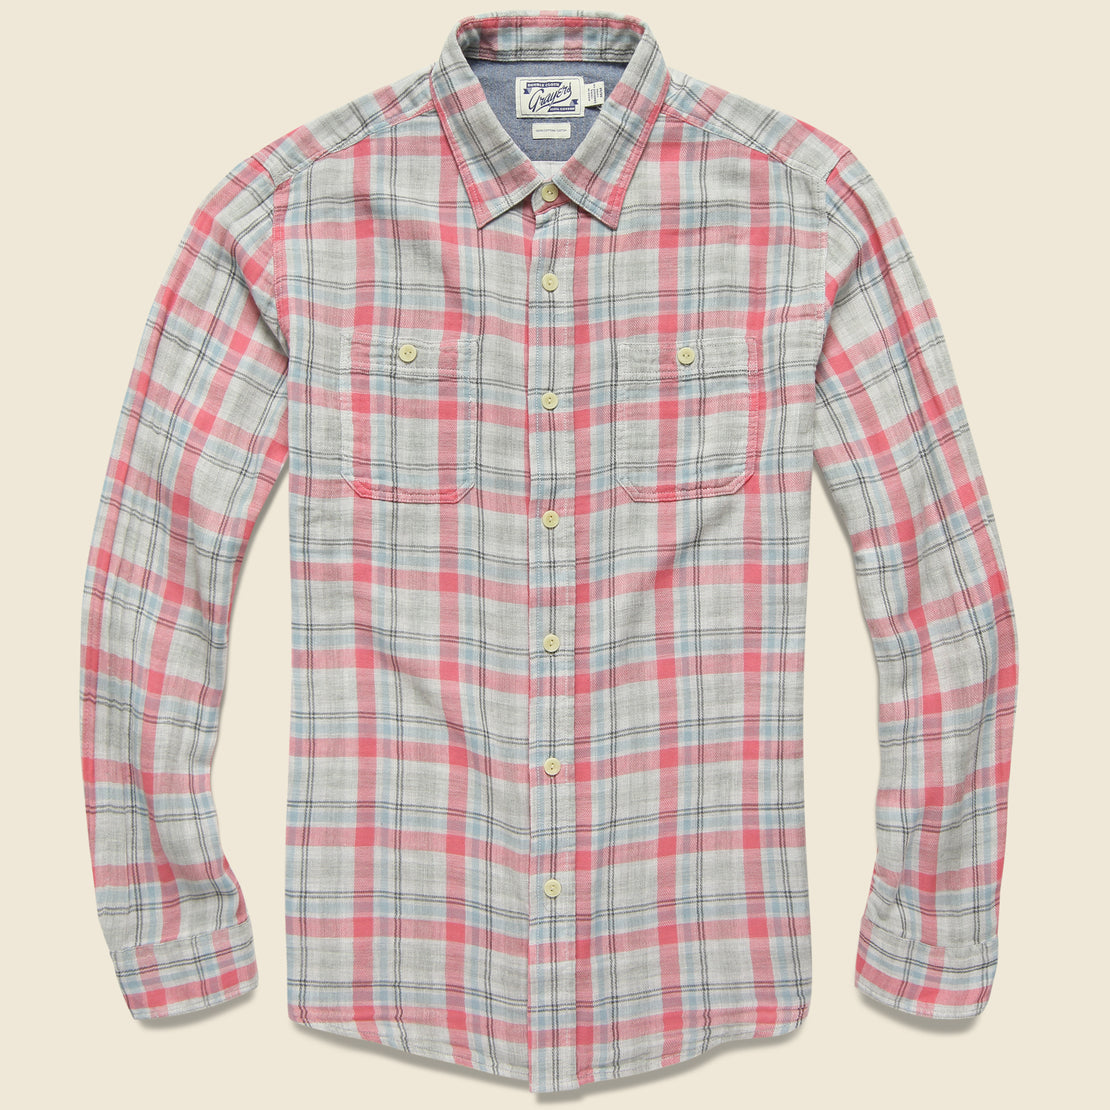 Grayers Mason Double Cloth Shirt - Salmon/Blue/Grey